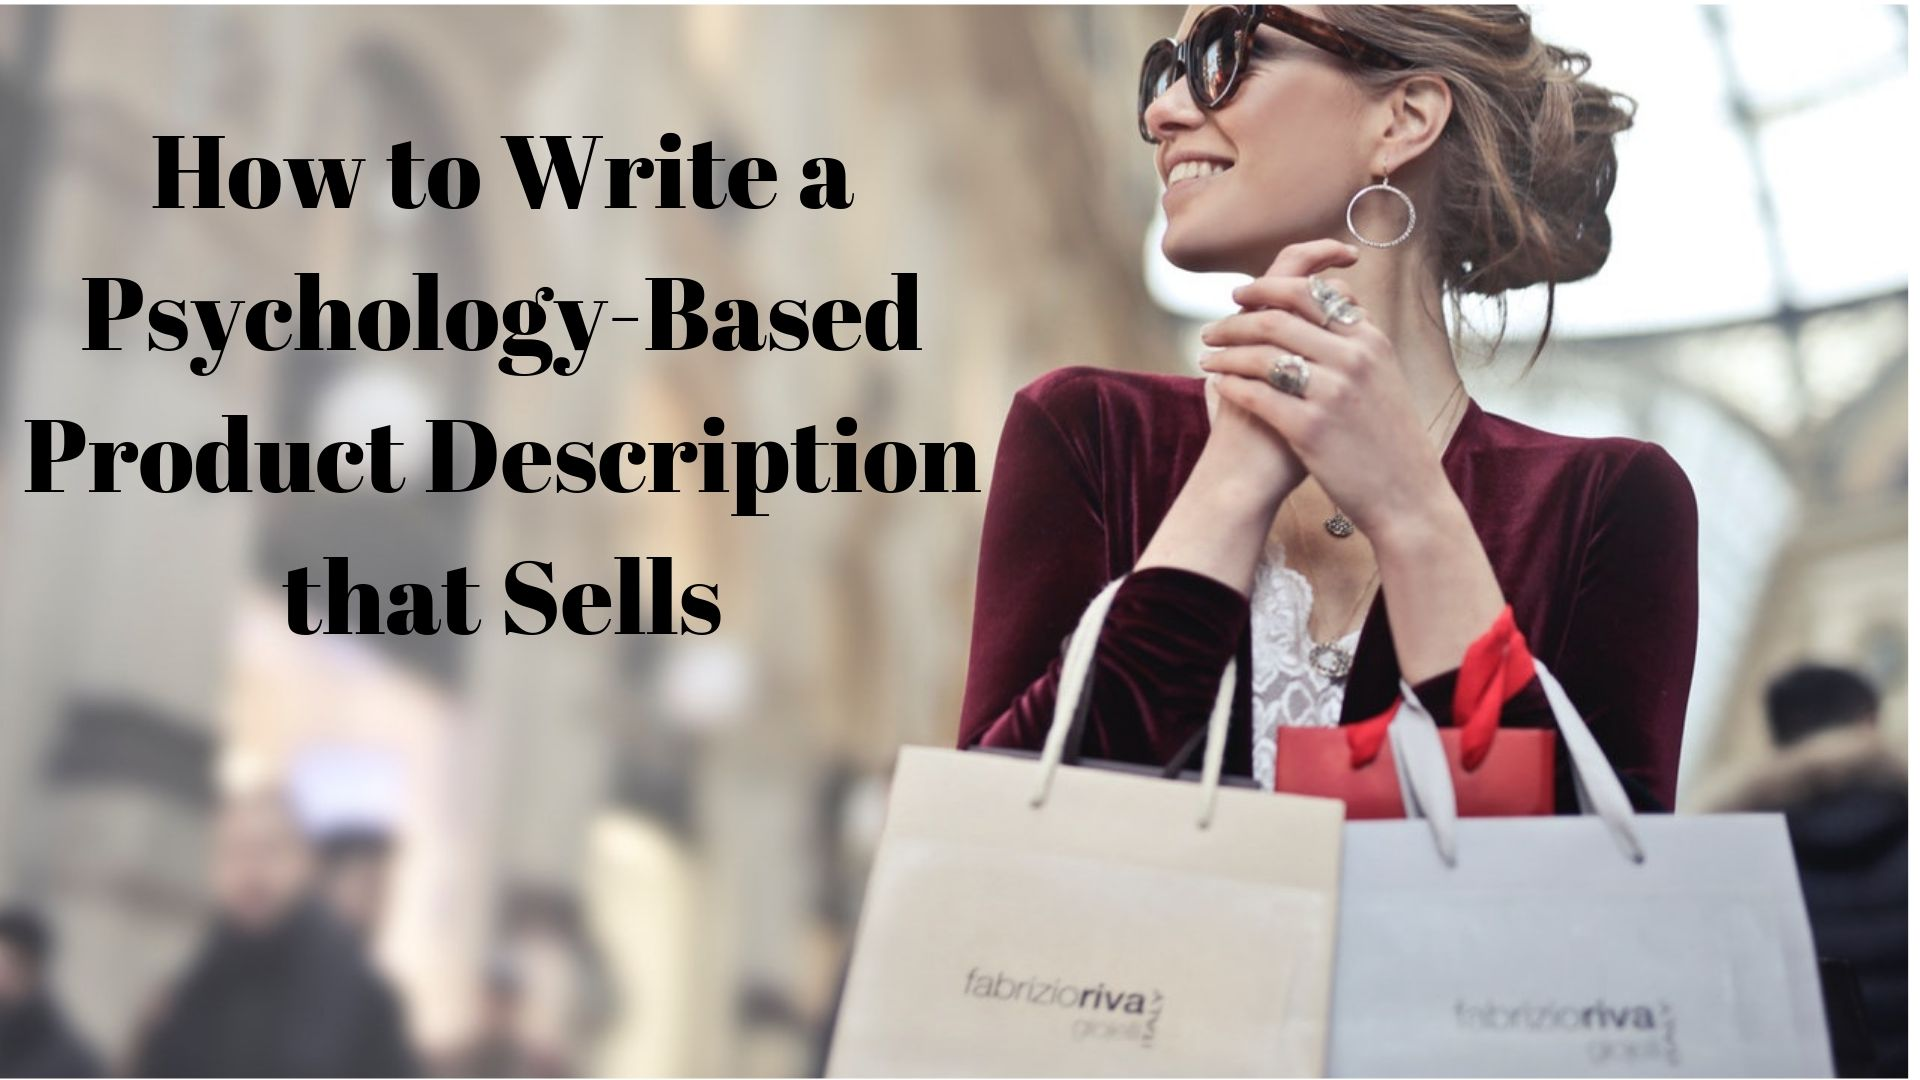 How to Write a Psychology-Based Product Description that Sells